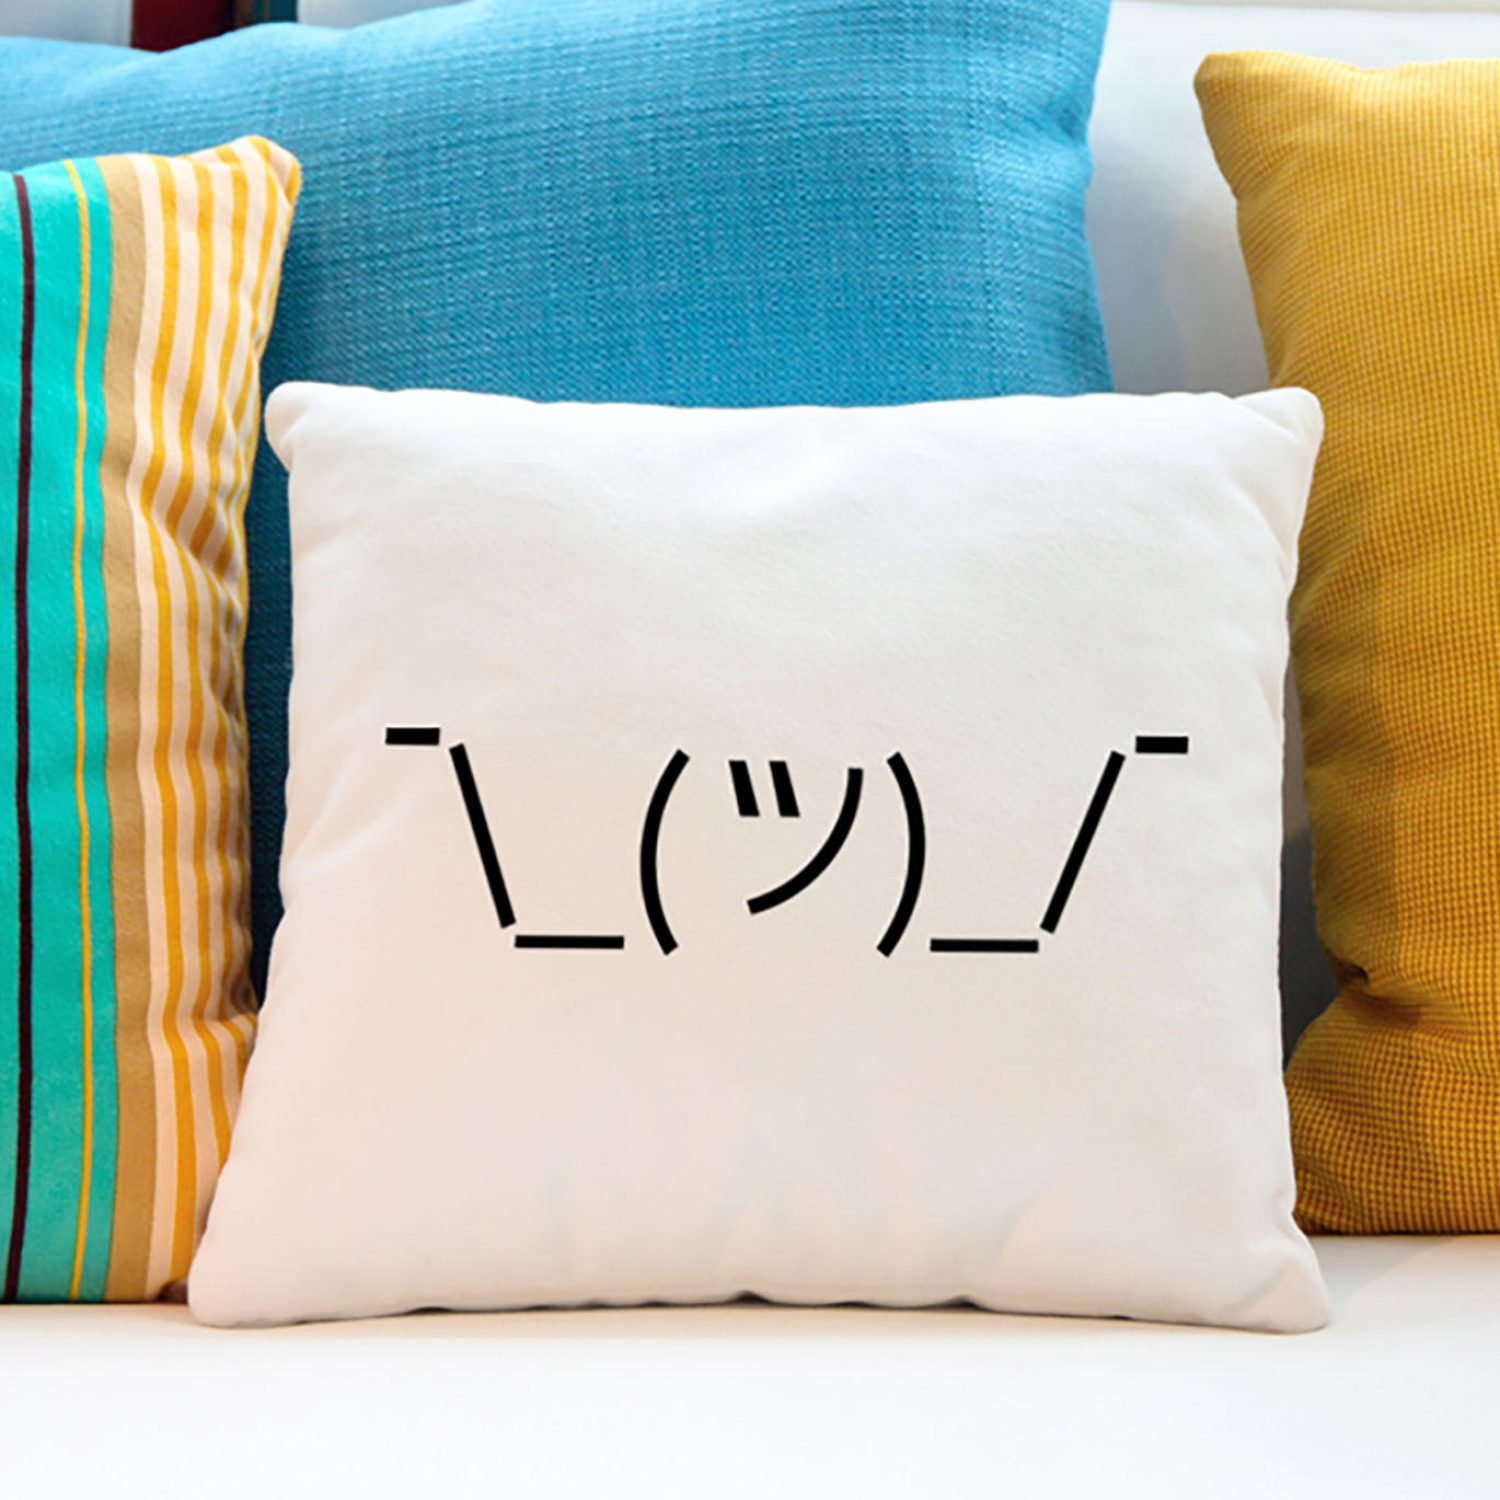 Shrugging emoji on a throw pillow